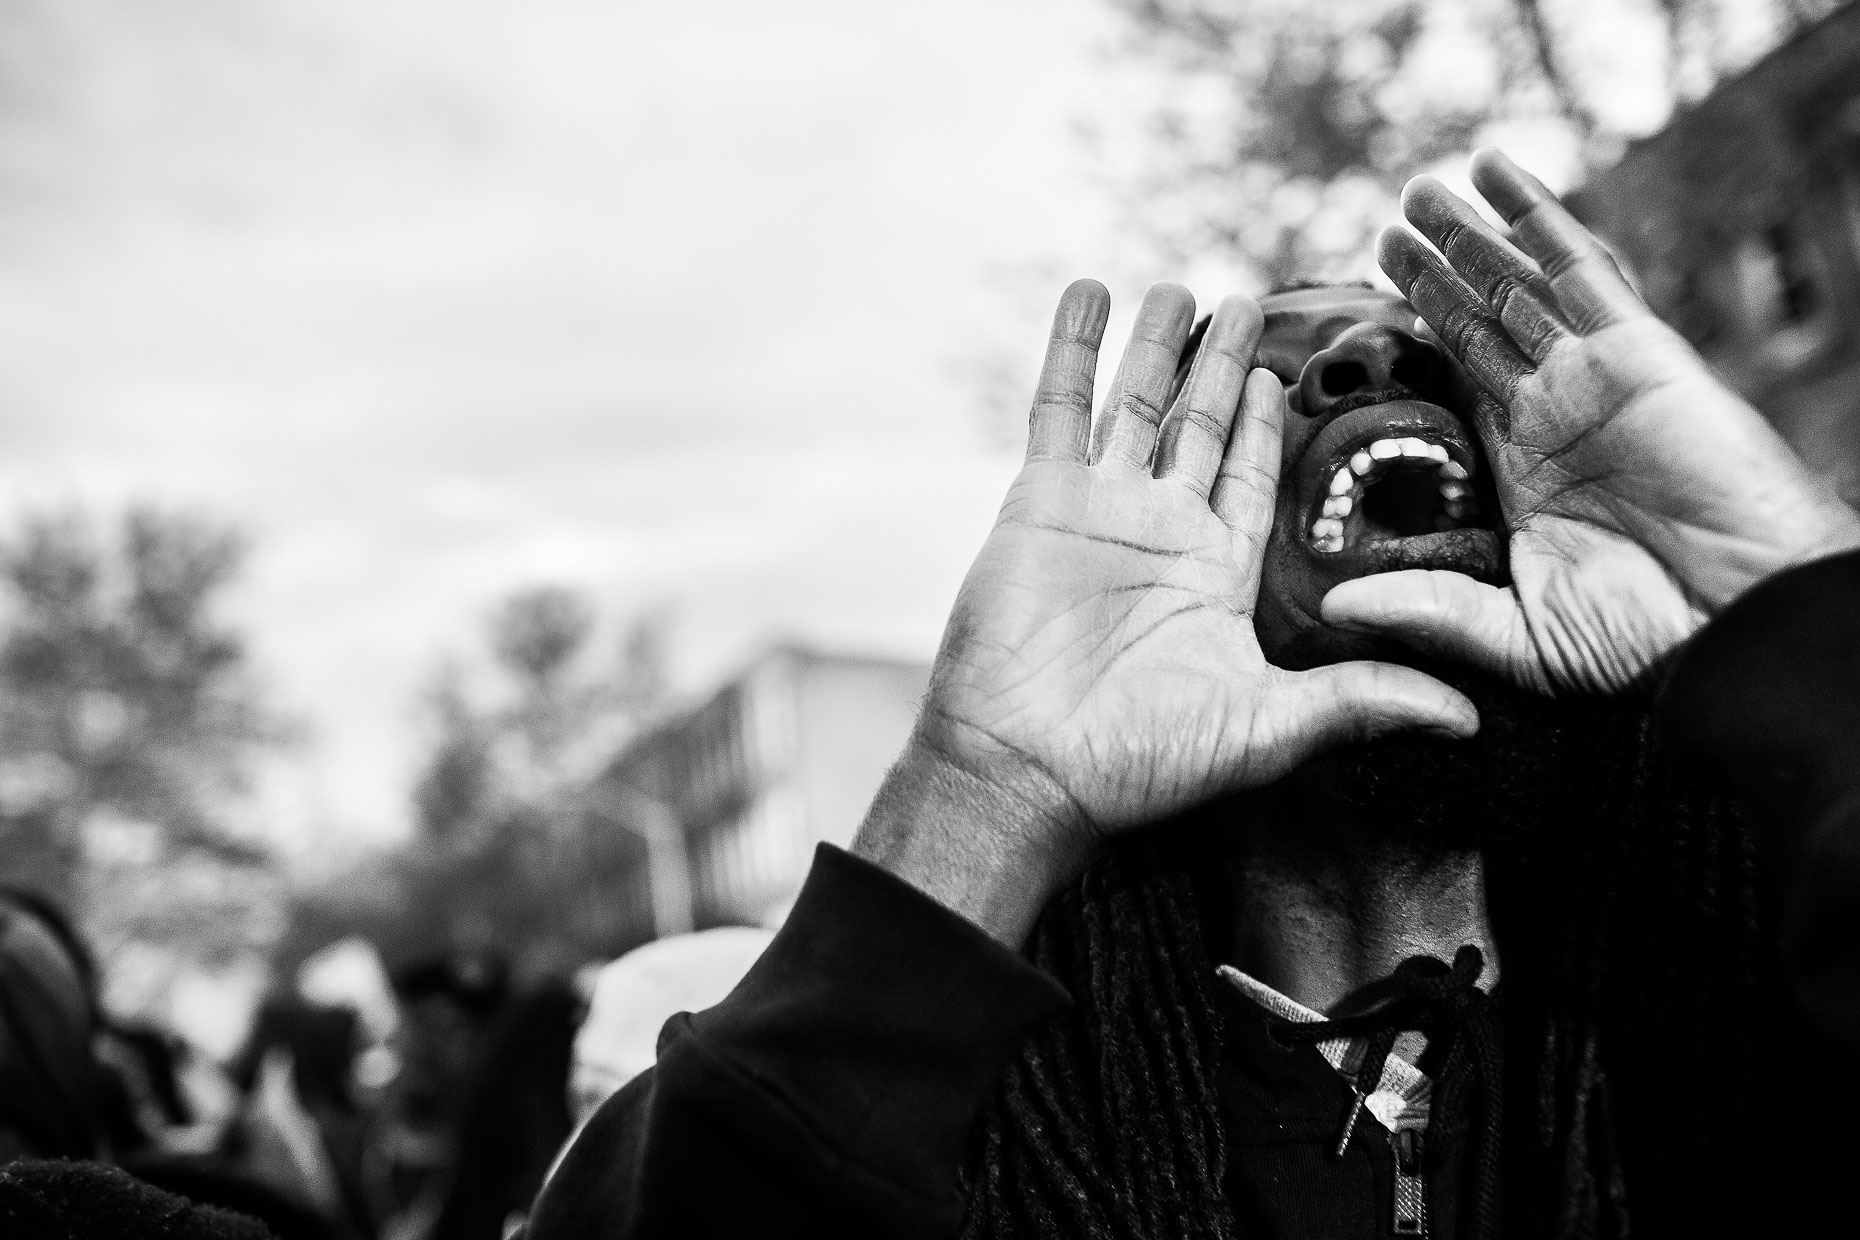 Baltimore Responds - The Baltimore Uprising - Photojournalism 01